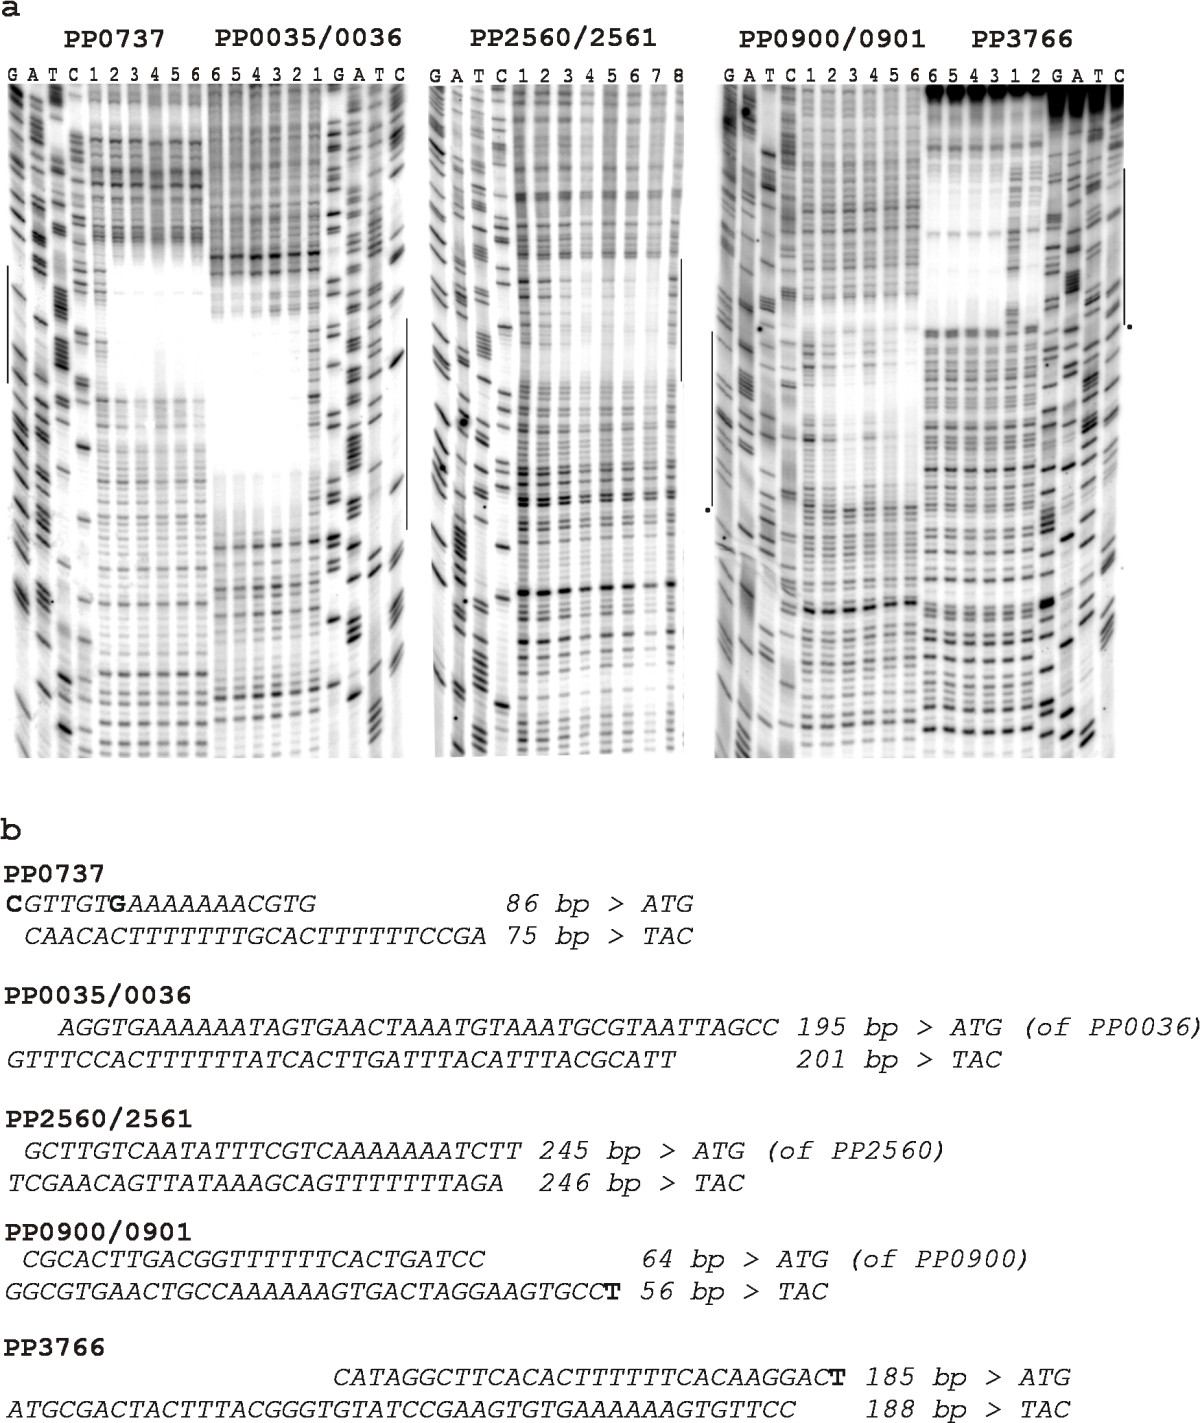 https://static-content.springer.com/image/art%3A10.1186%2F1471-2199-10-46/MediaObjects/12867_2008_Article_414_Fig4_HTML.jpg